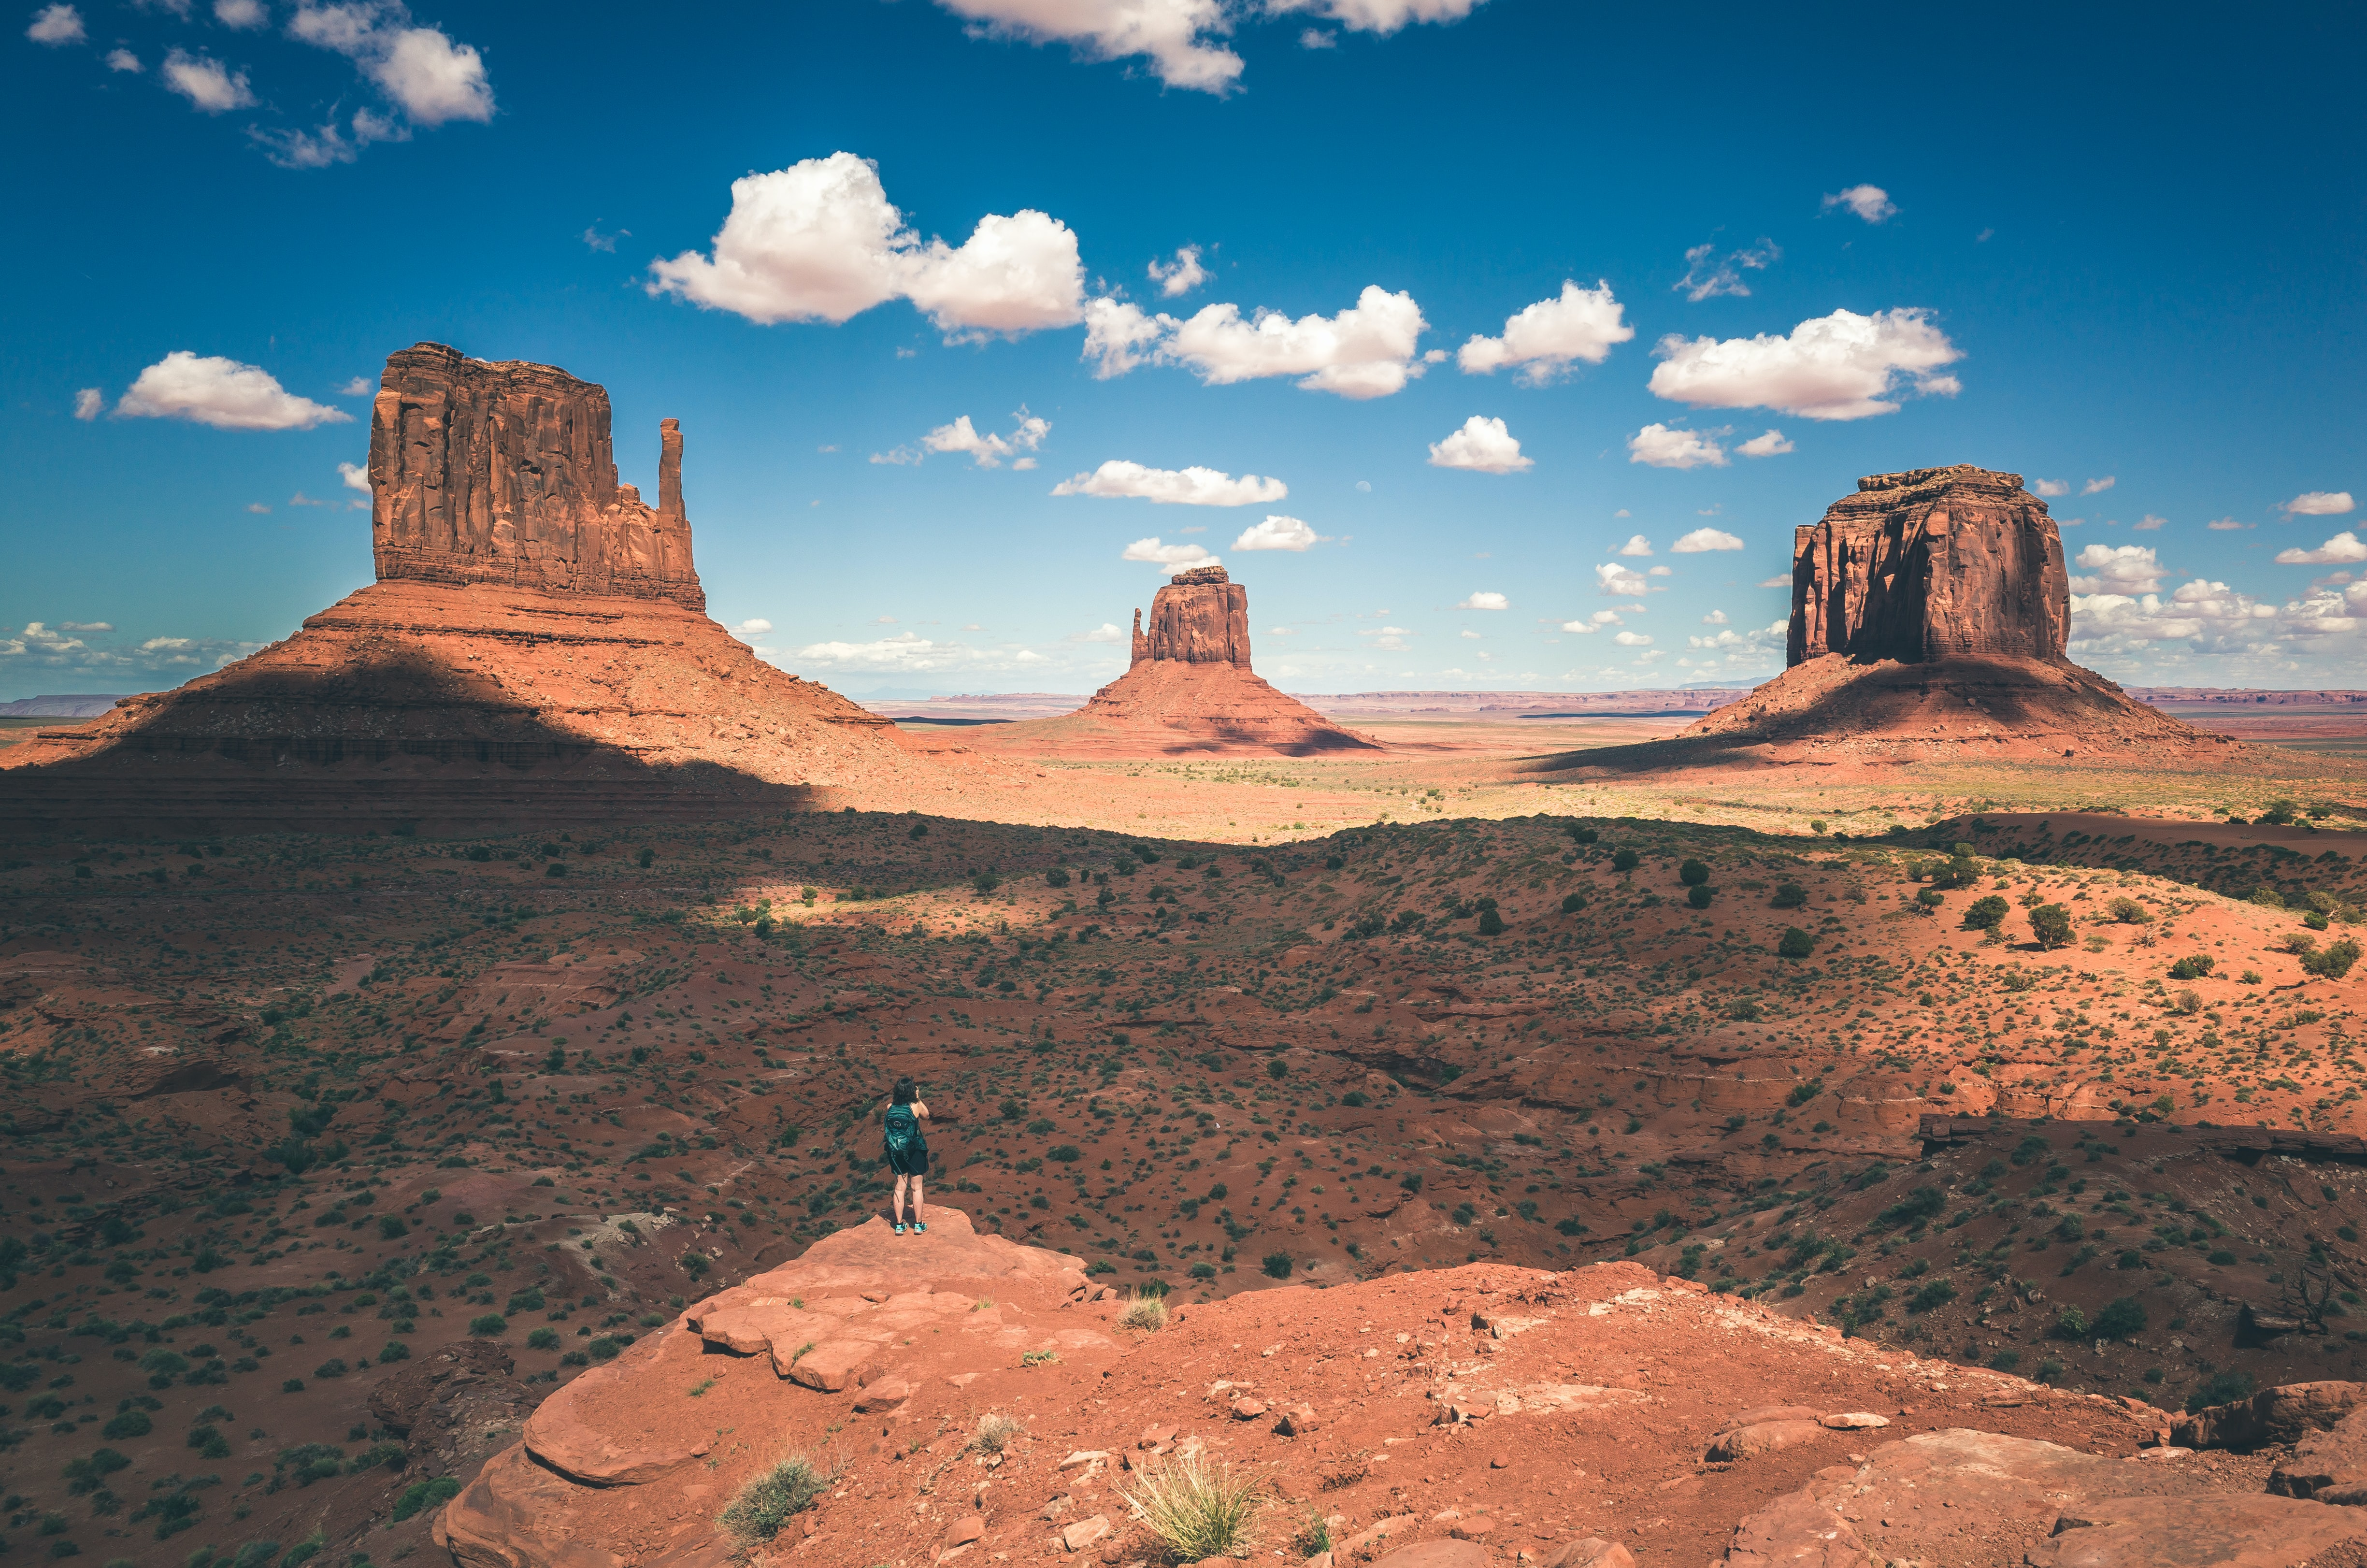 Hiker stands atop a peak of a rock formation in the desert of Oljato-Monument Valley